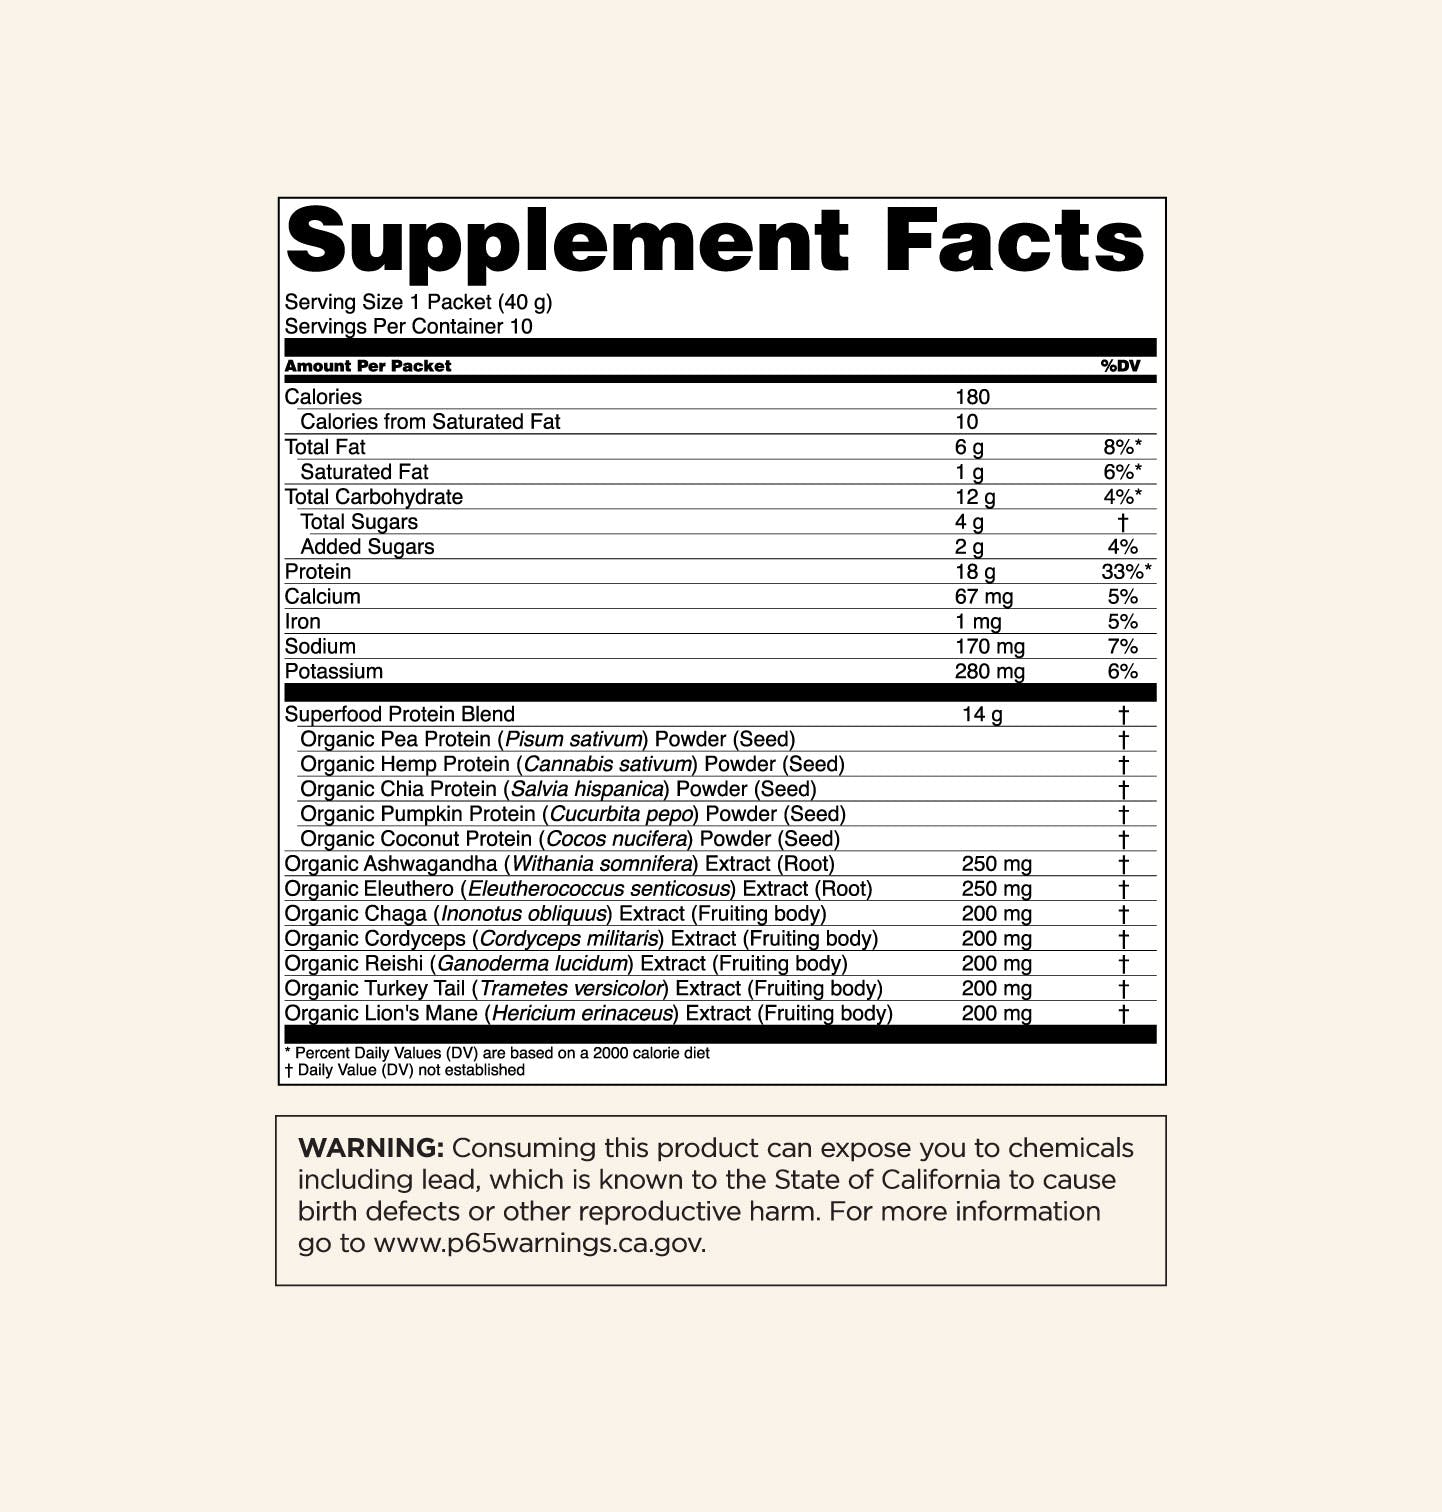 Peanut Butter Supplements Facts Panel